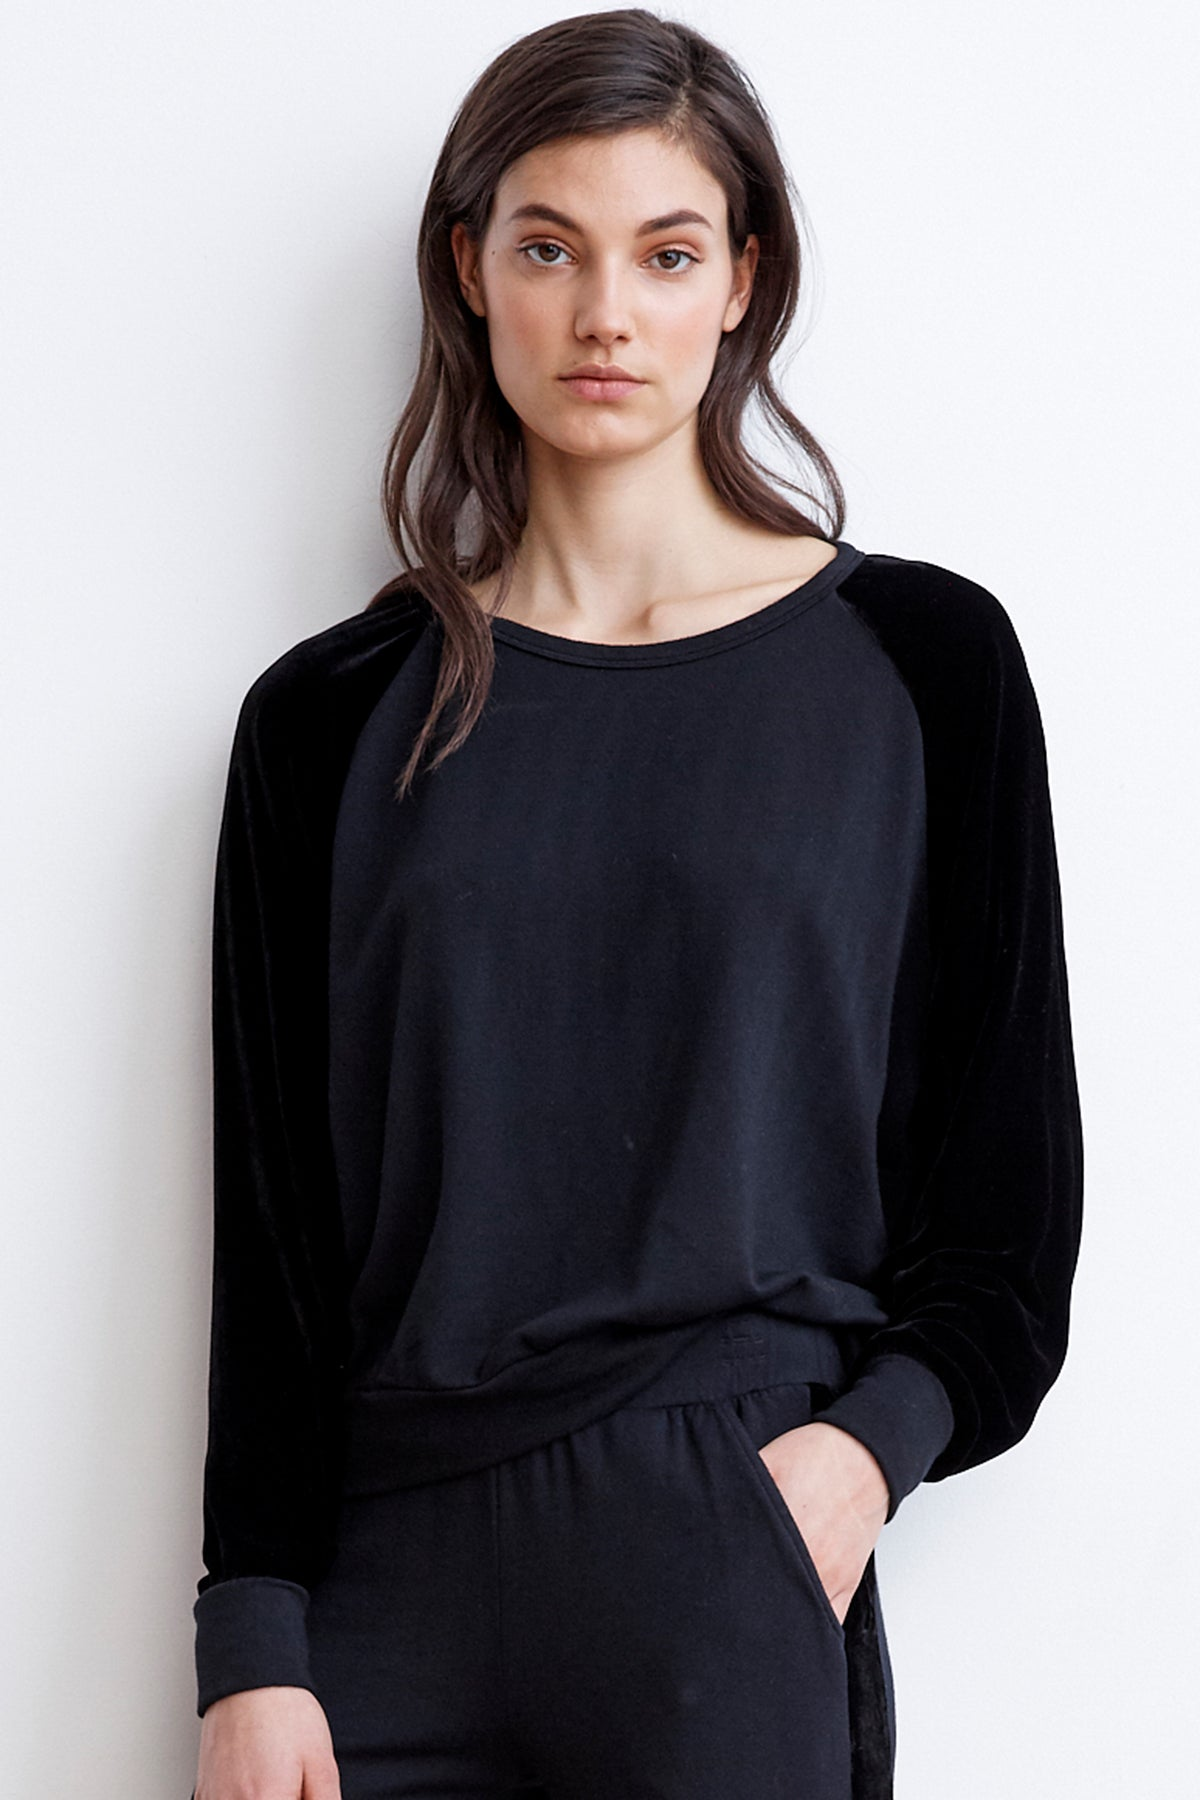 WESTINE VELVET FLEECE RAGLAN TOP